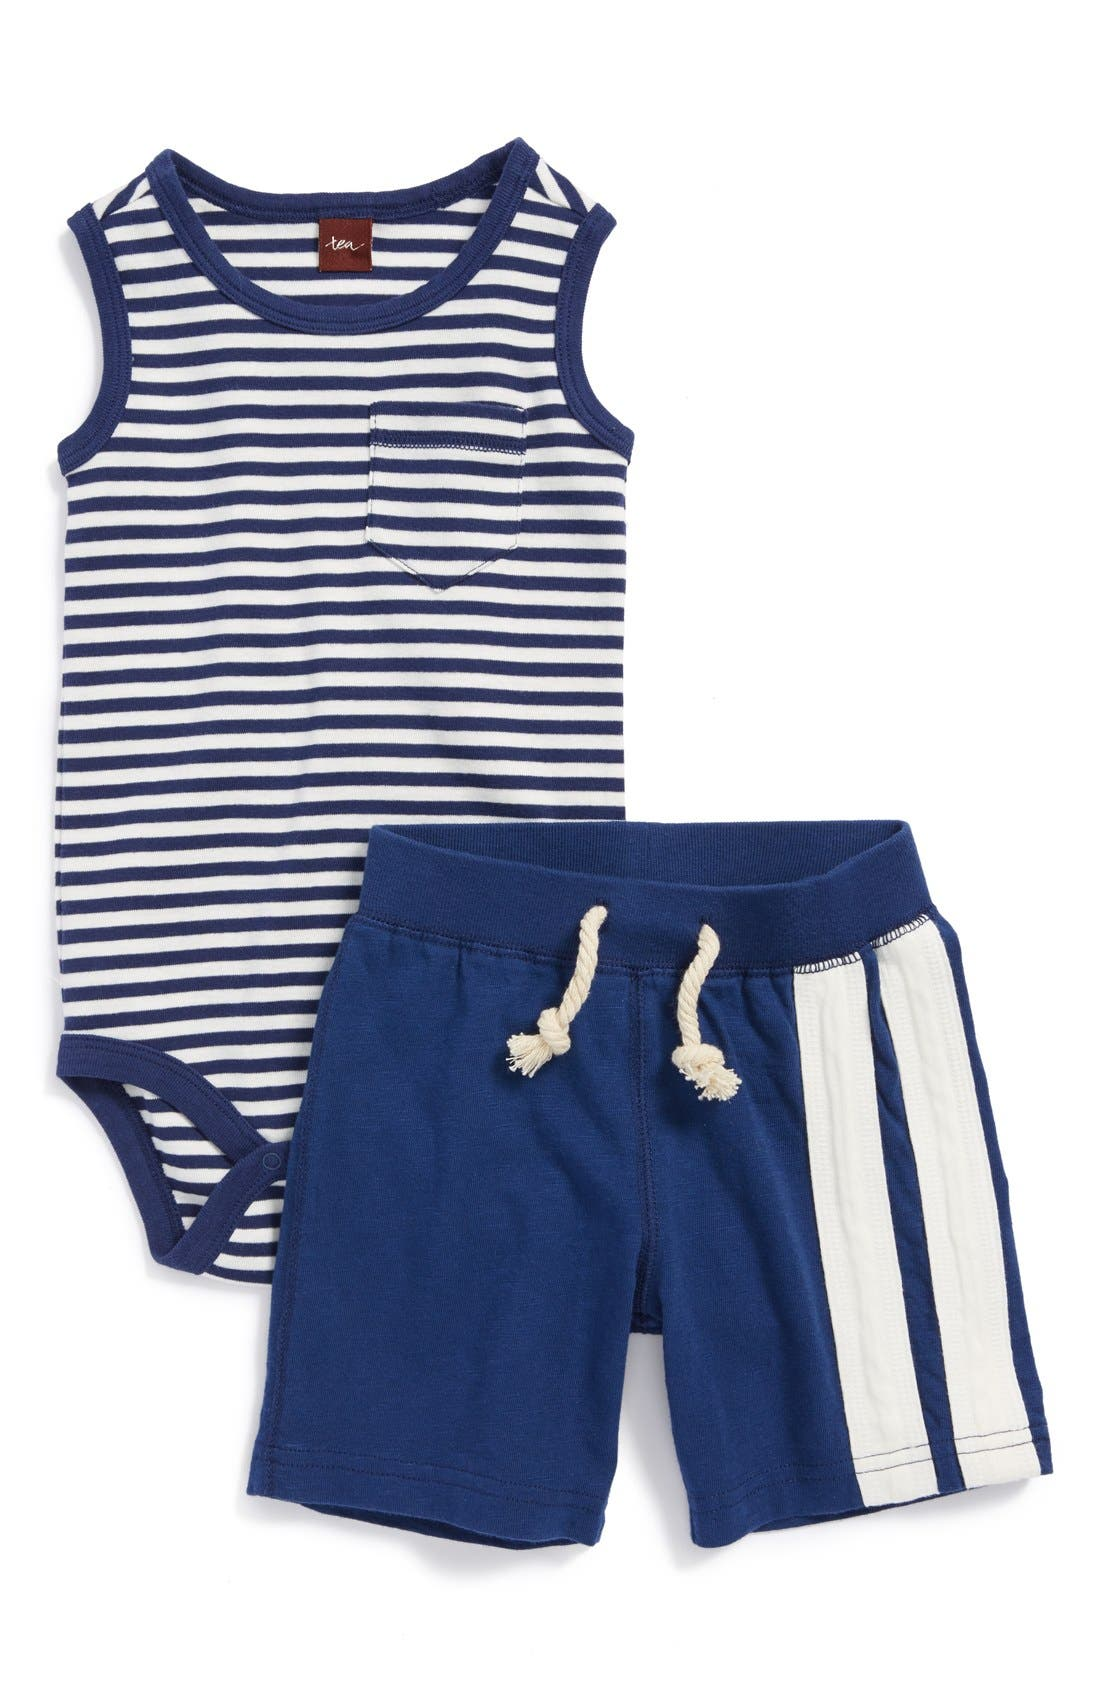 Main Image - Tea Collection Stripe Tank Bodysuit & Shorts (Baby Boys)